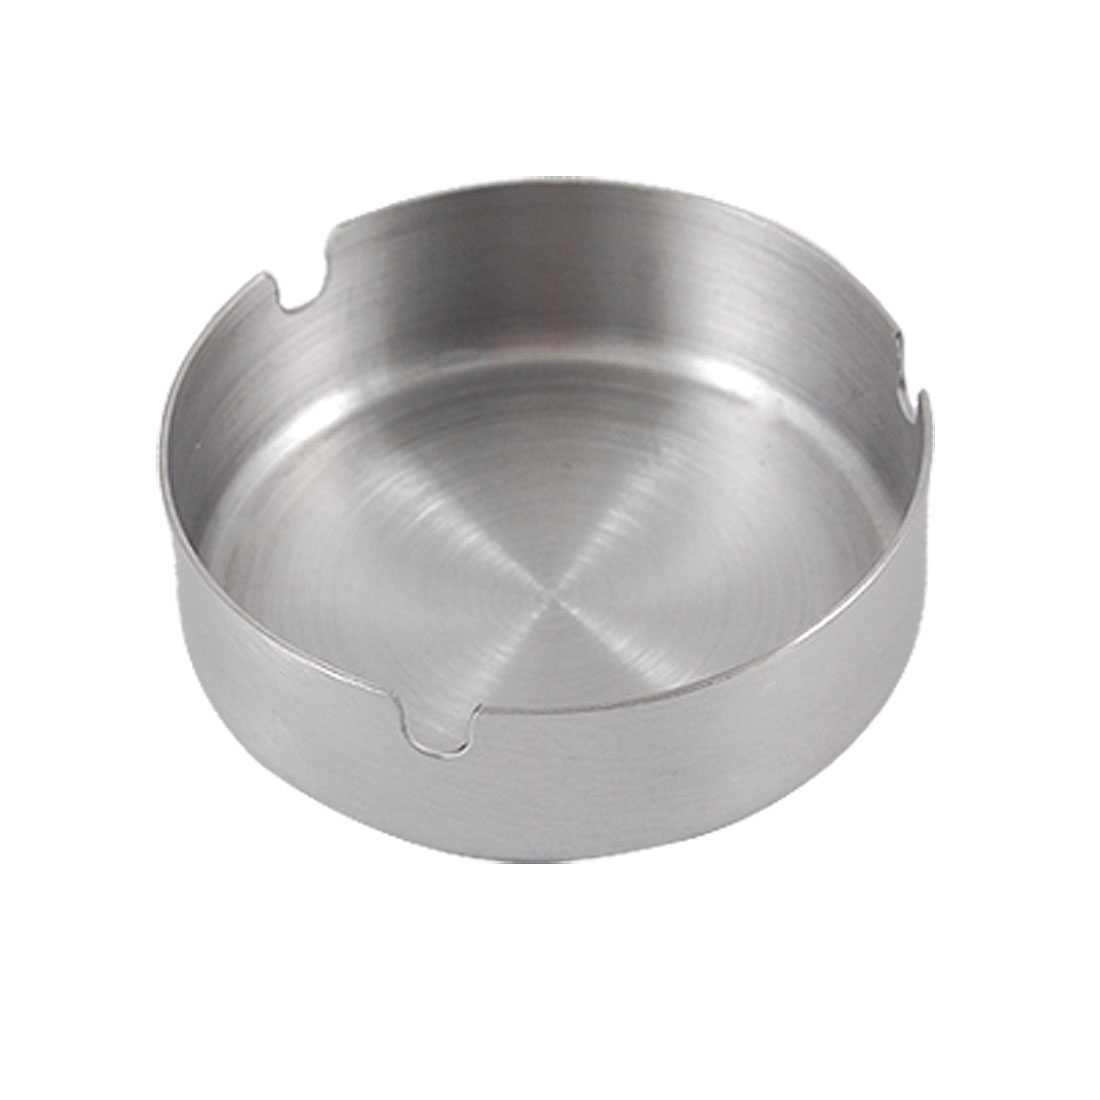 "3.1"" Diameter Round Stainless Steel Cigarette Holder Ashtray"